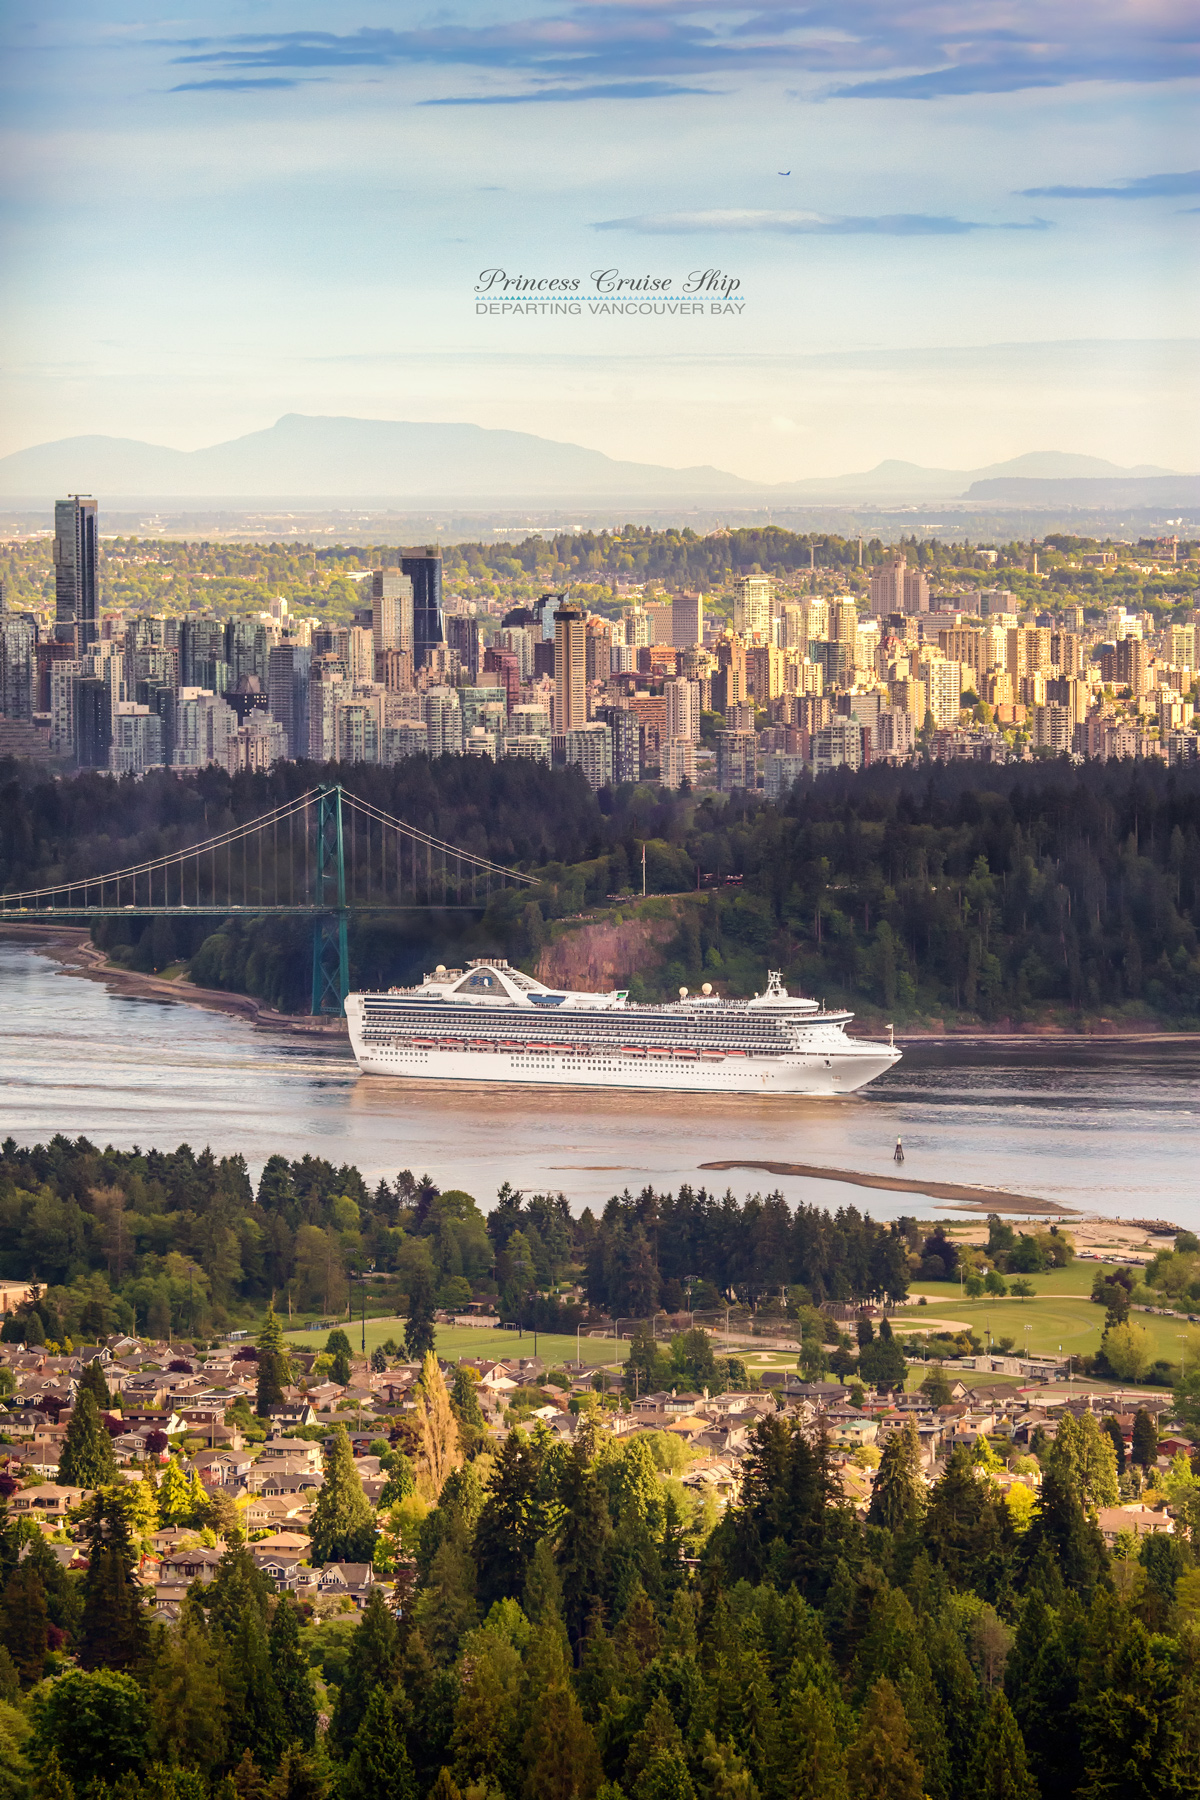 Princess Cruise Ship departing Vancouver Bay via J5MM.com